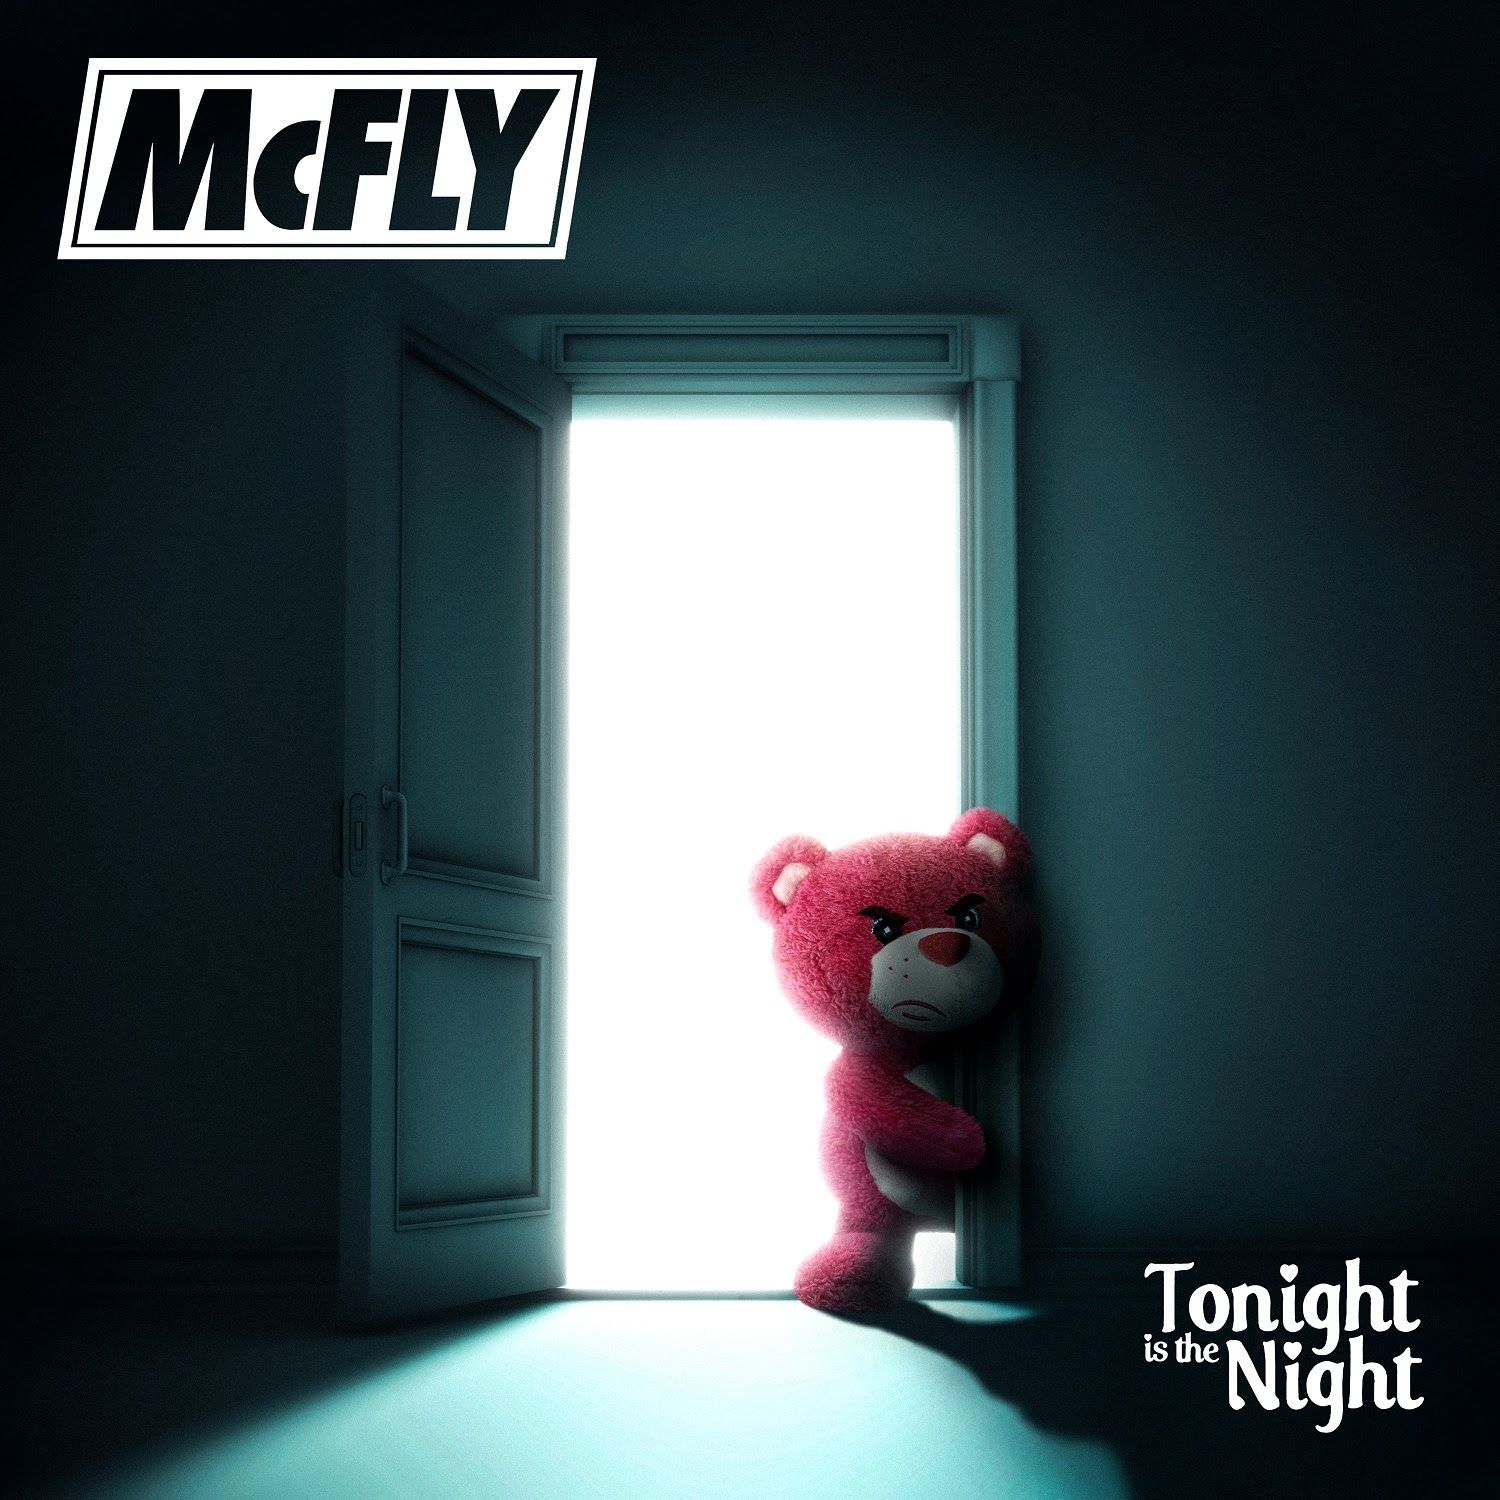 McFly Tonight is the night